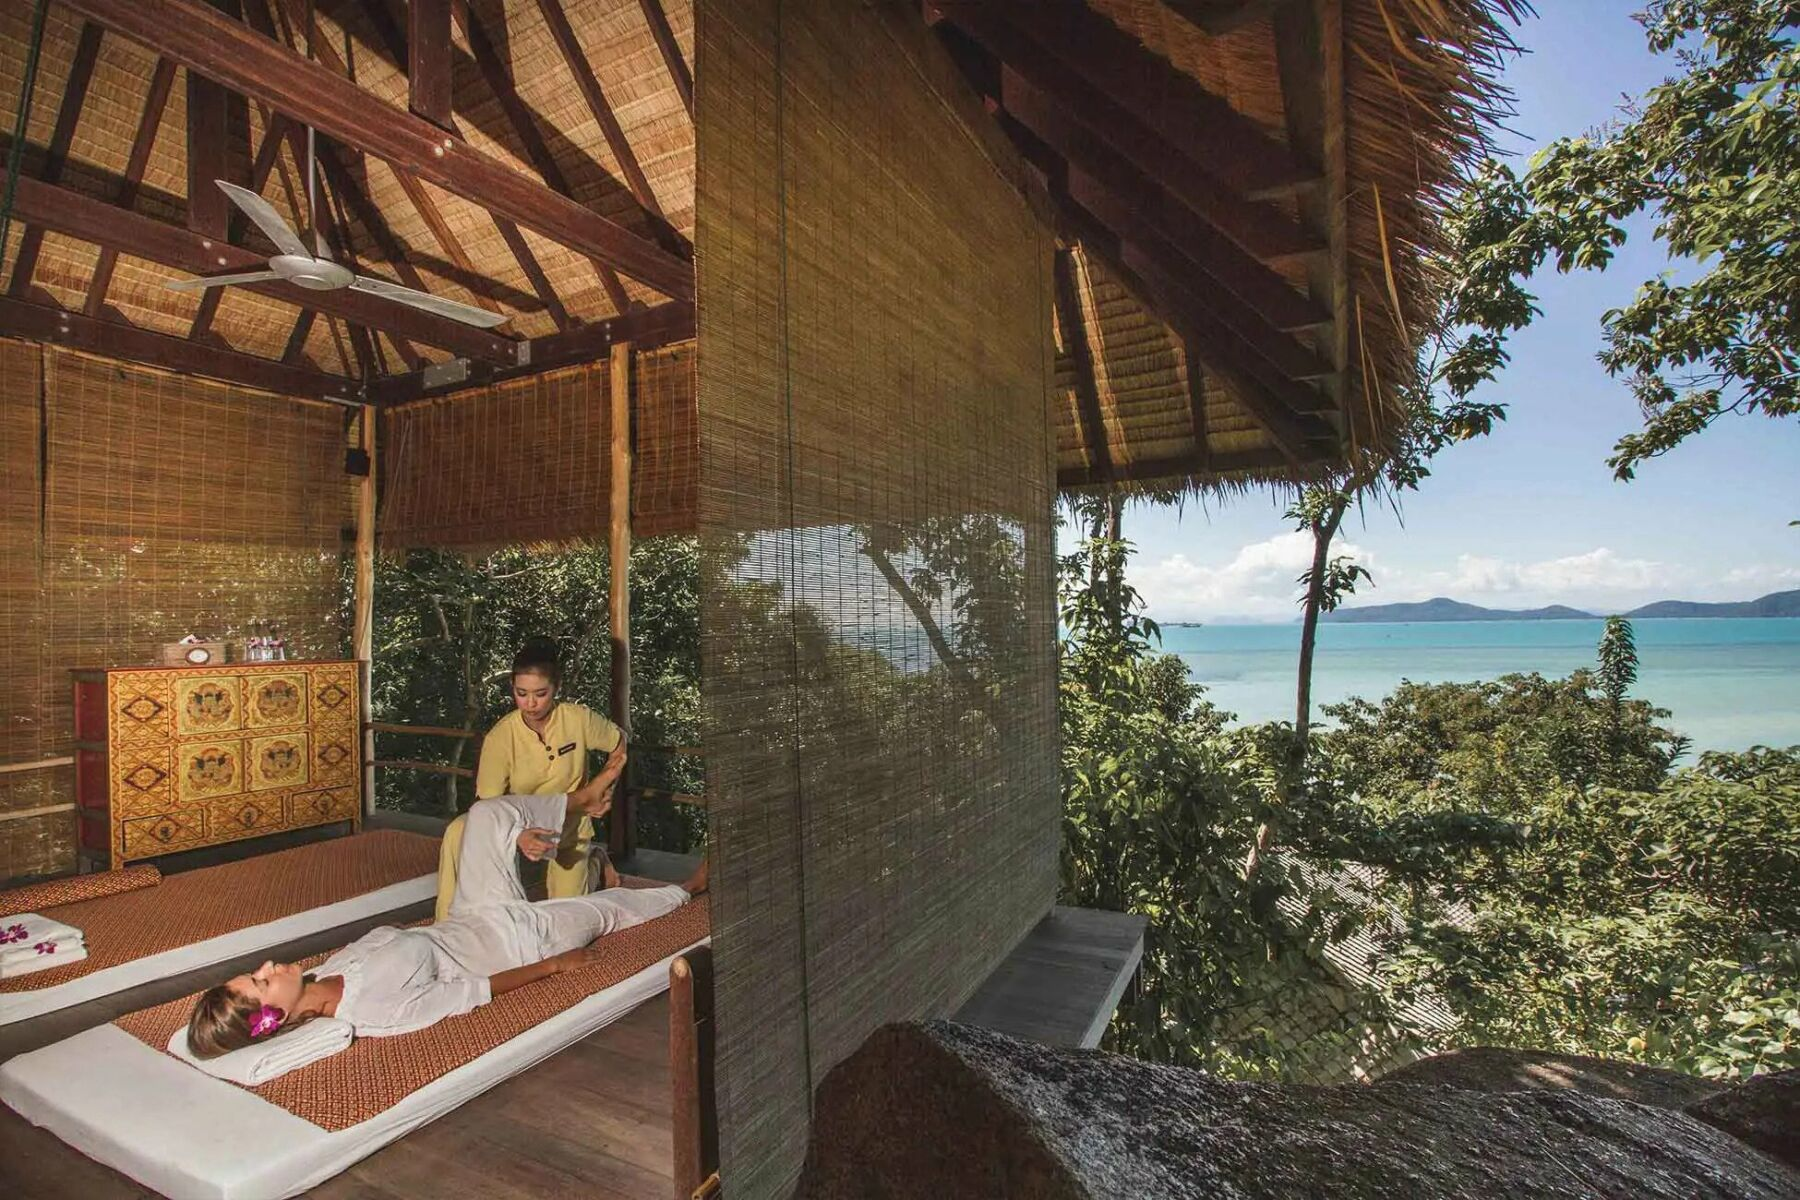 The Kamalaya - One of the best meditation centers and retreats in Thailand.